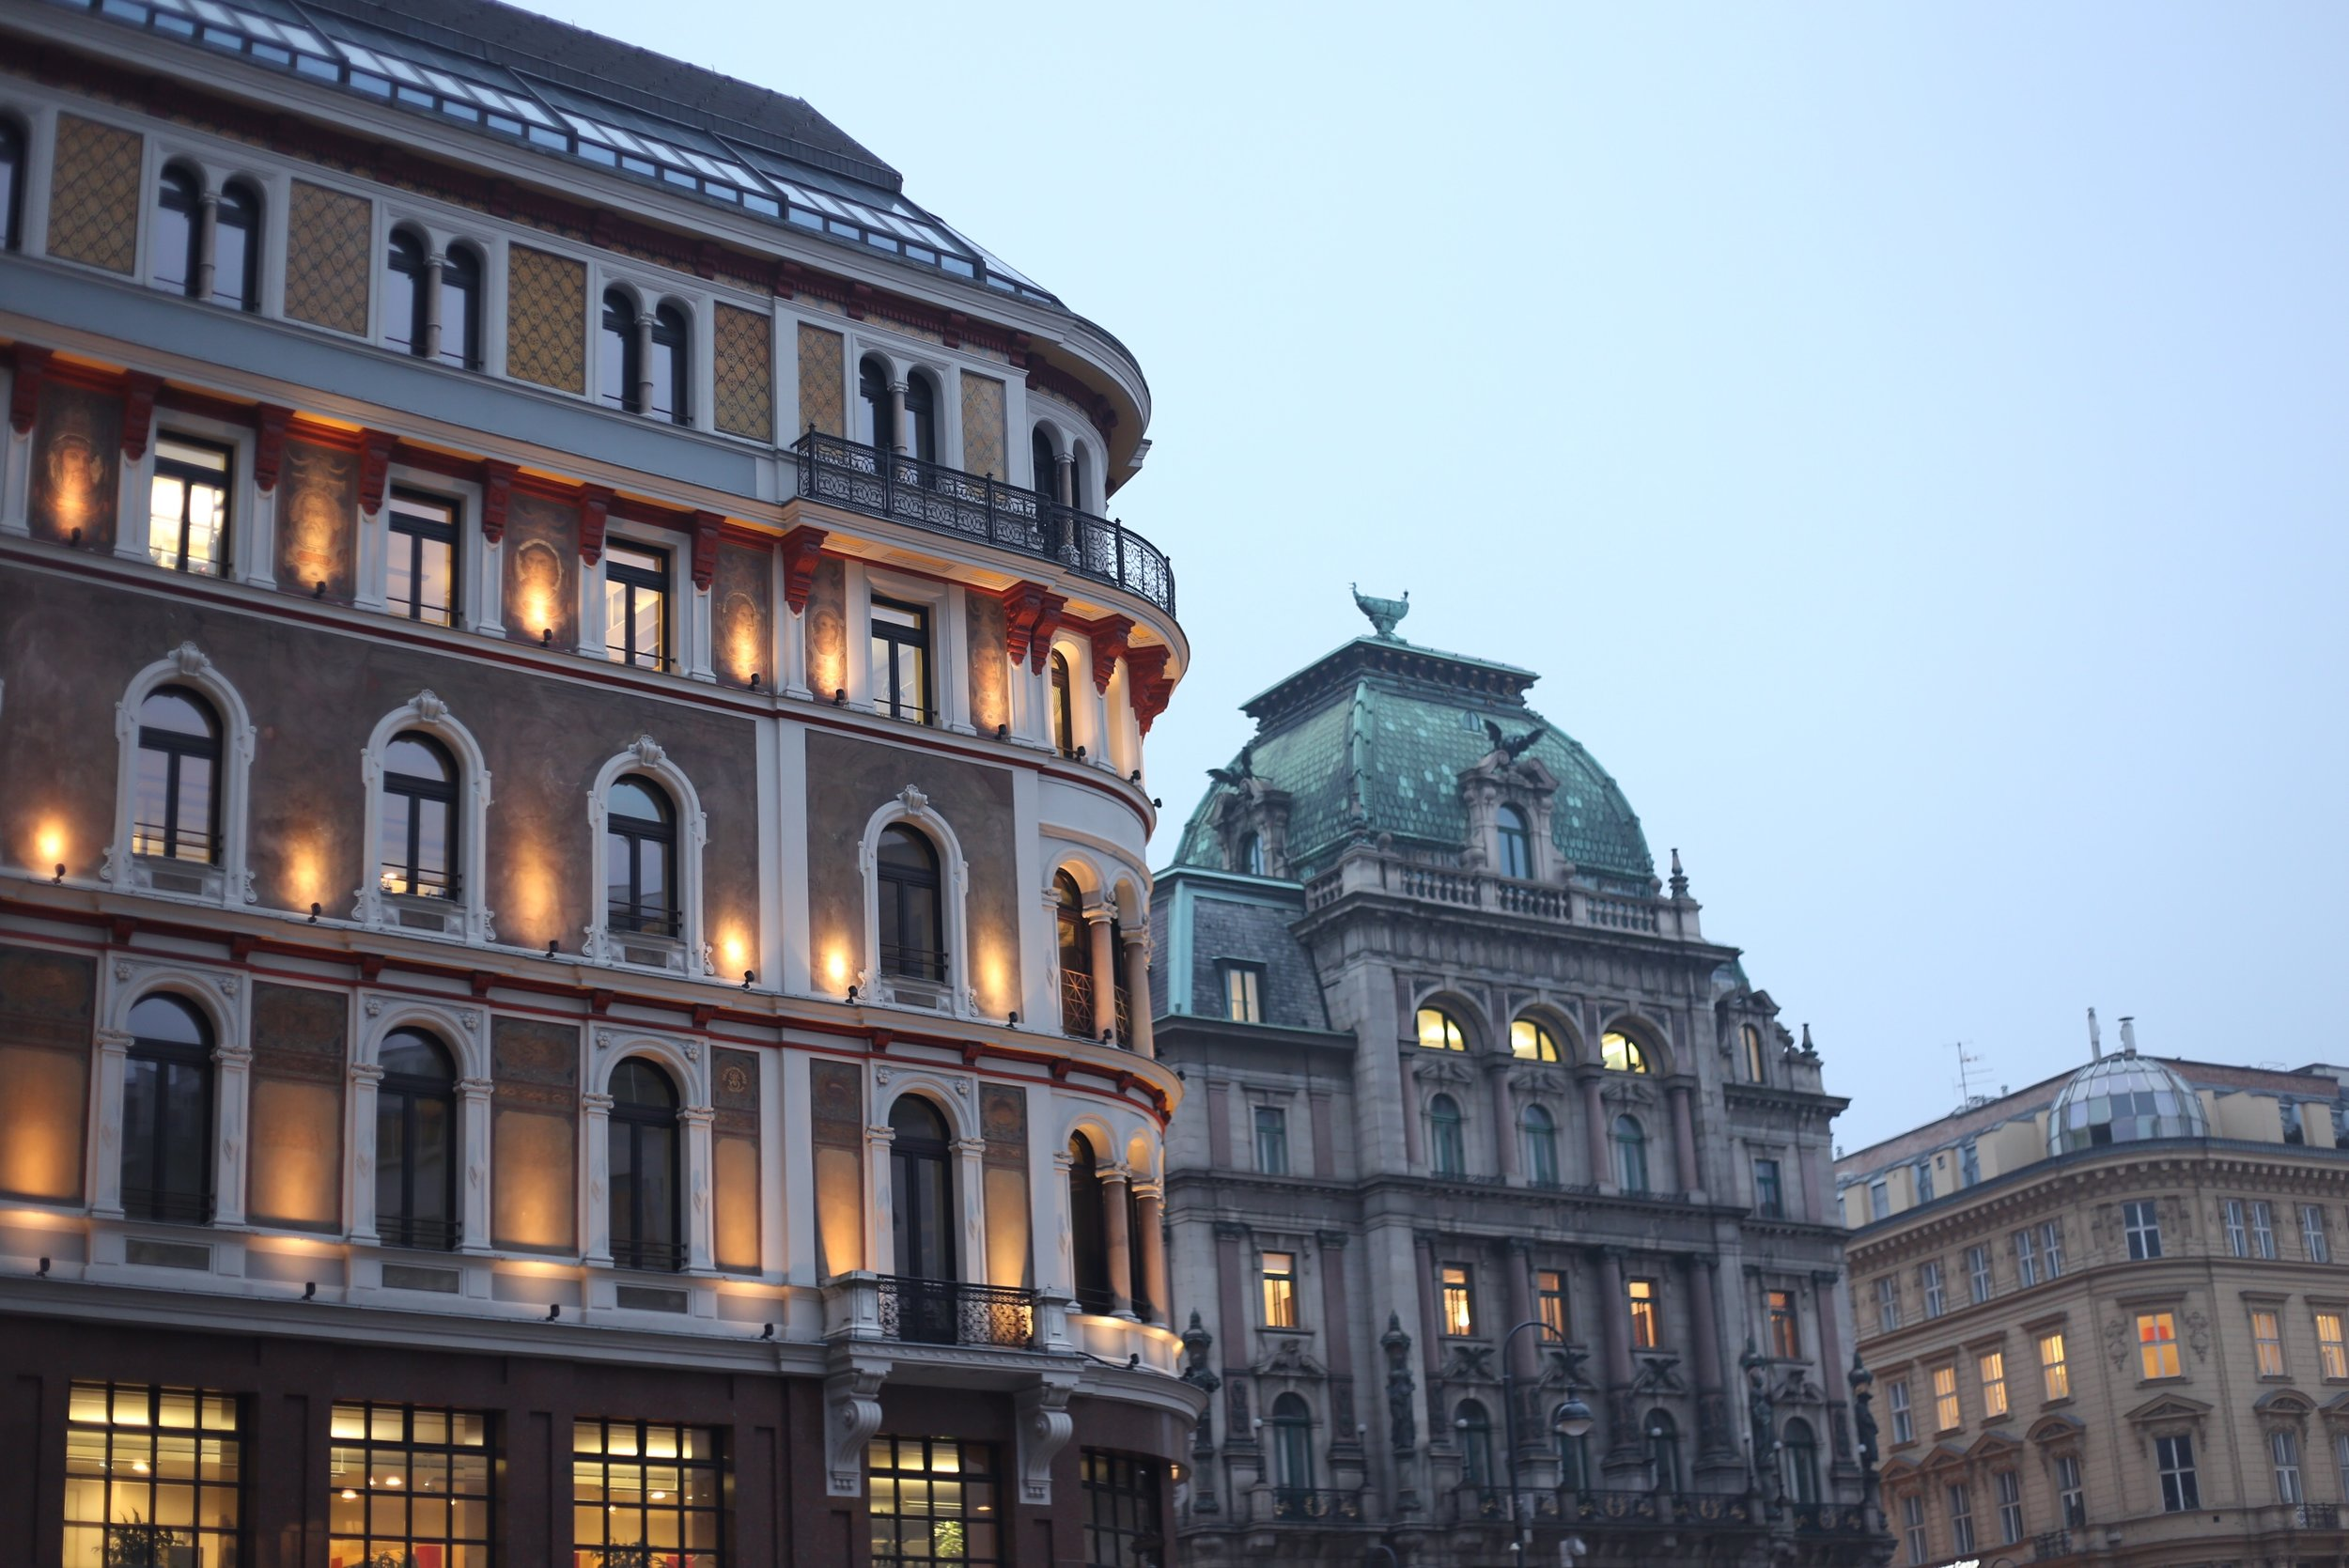 Viennese architecture all lit up.